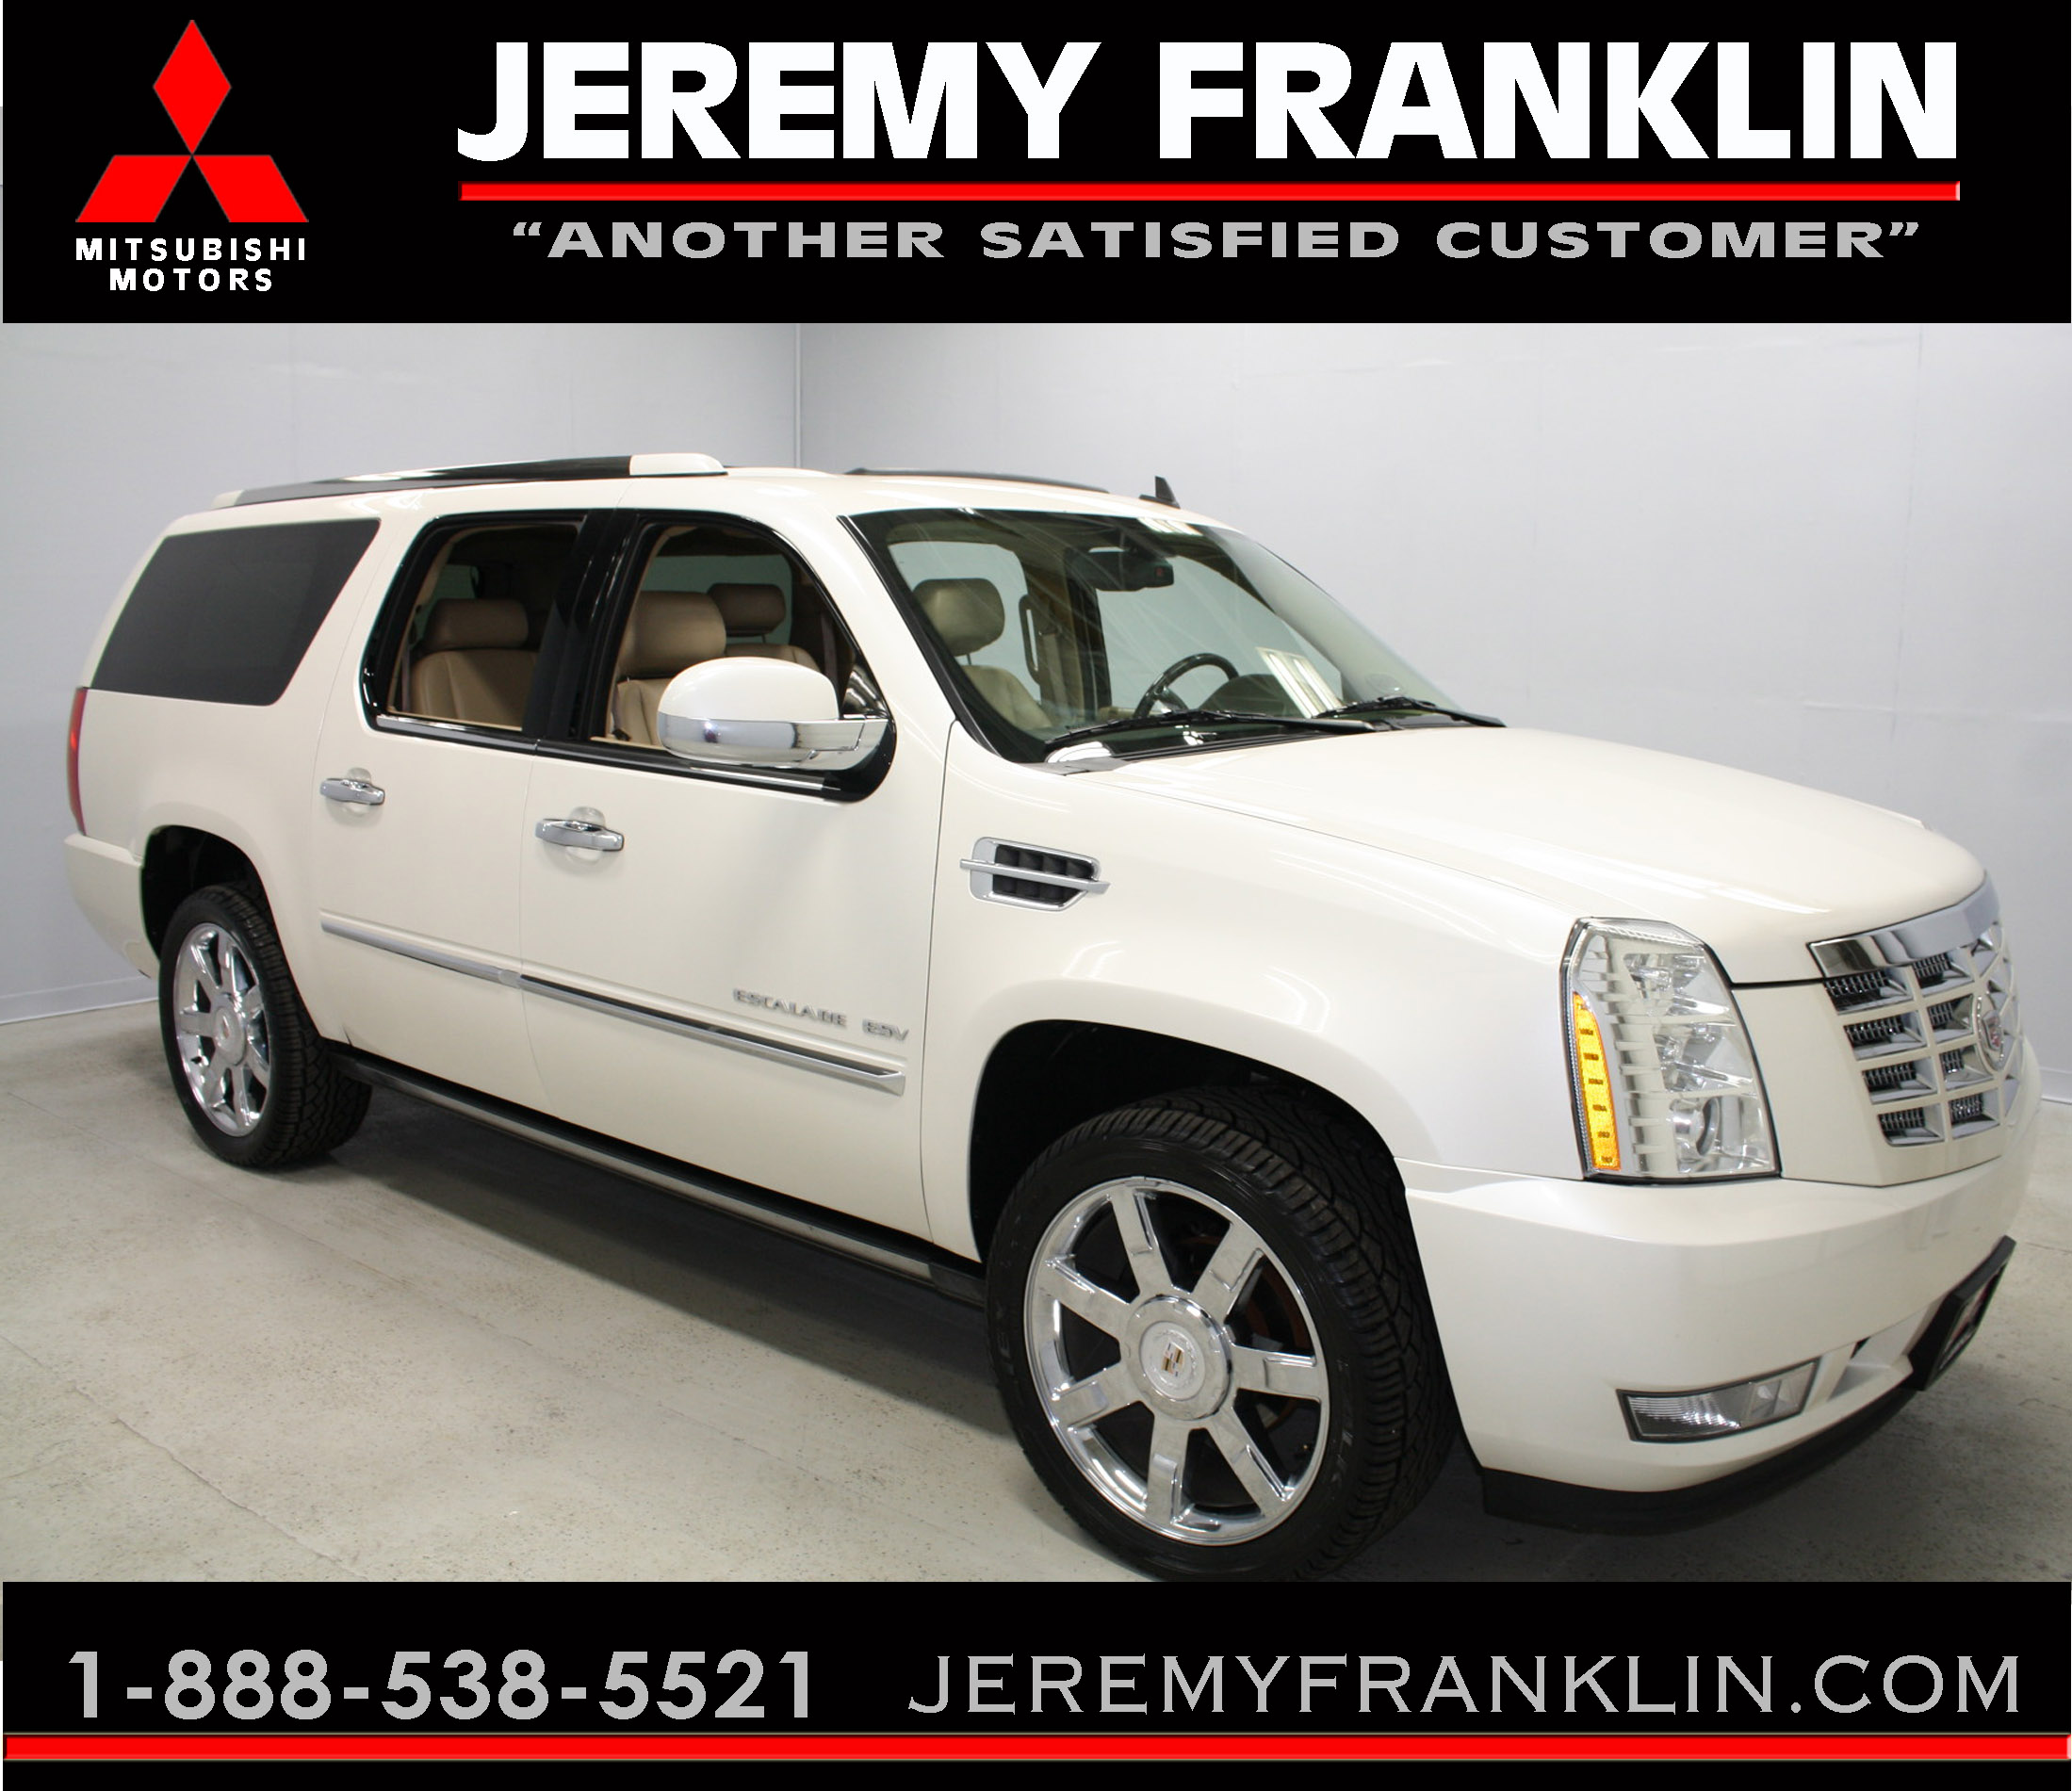 2010 Cadillac Escalade Esv Premium: Used Cadillac Escalade ESV For Sale Kansas City, MO